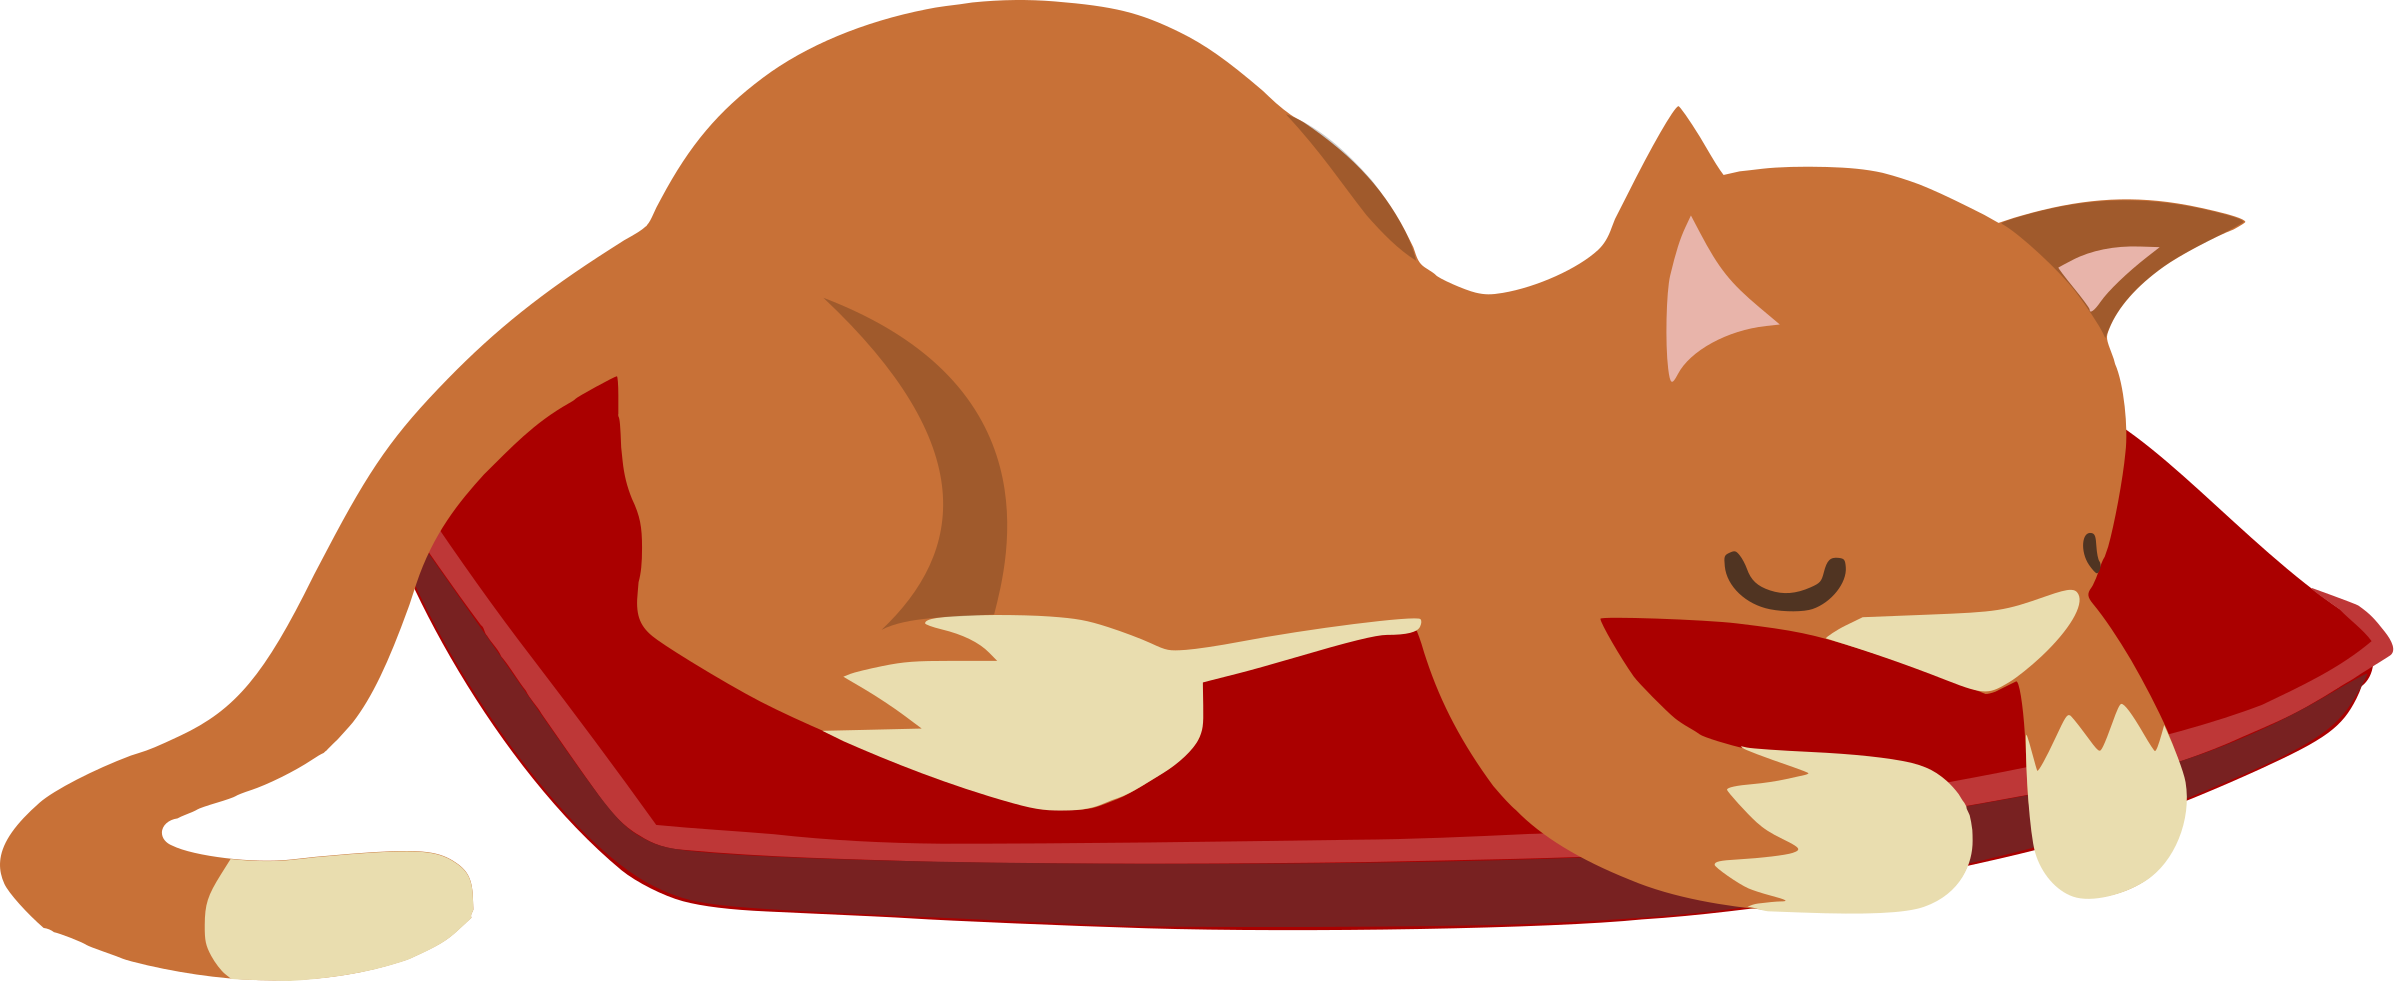 Sleeping from glitch big. Clipart cat red